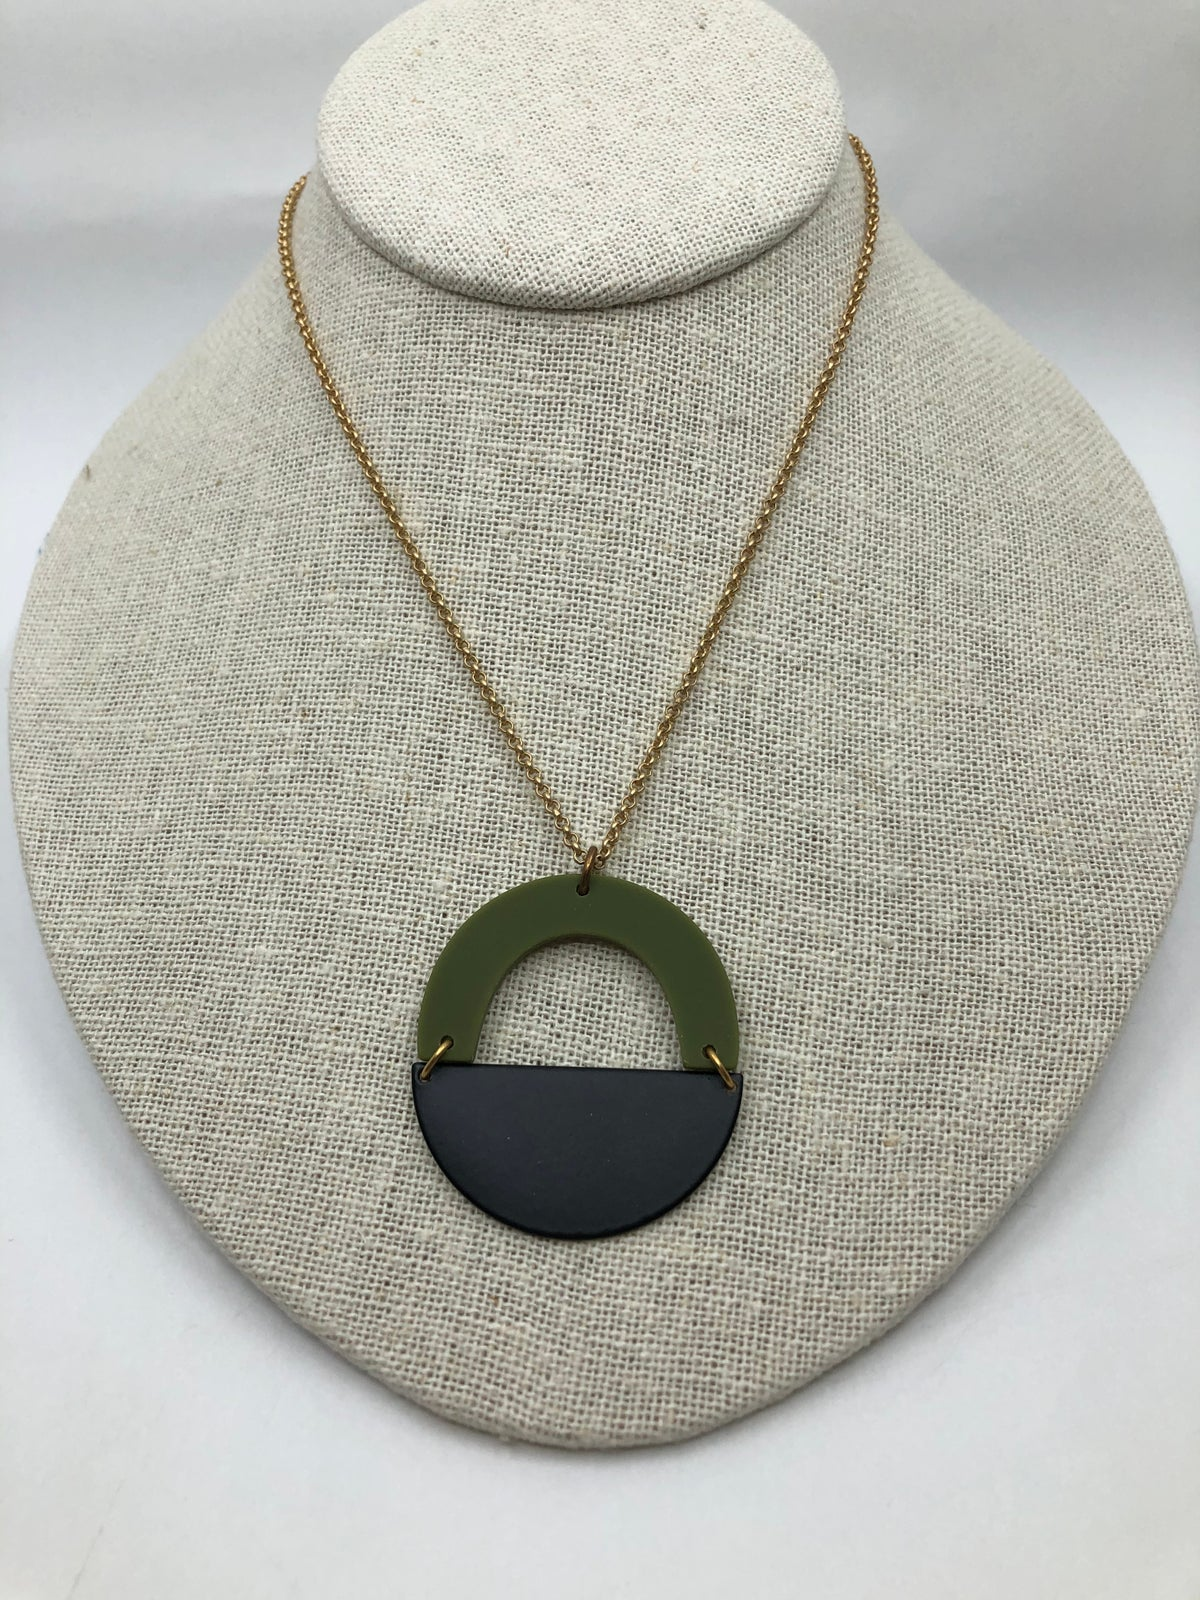 Circle Necklace by Larissa Loden